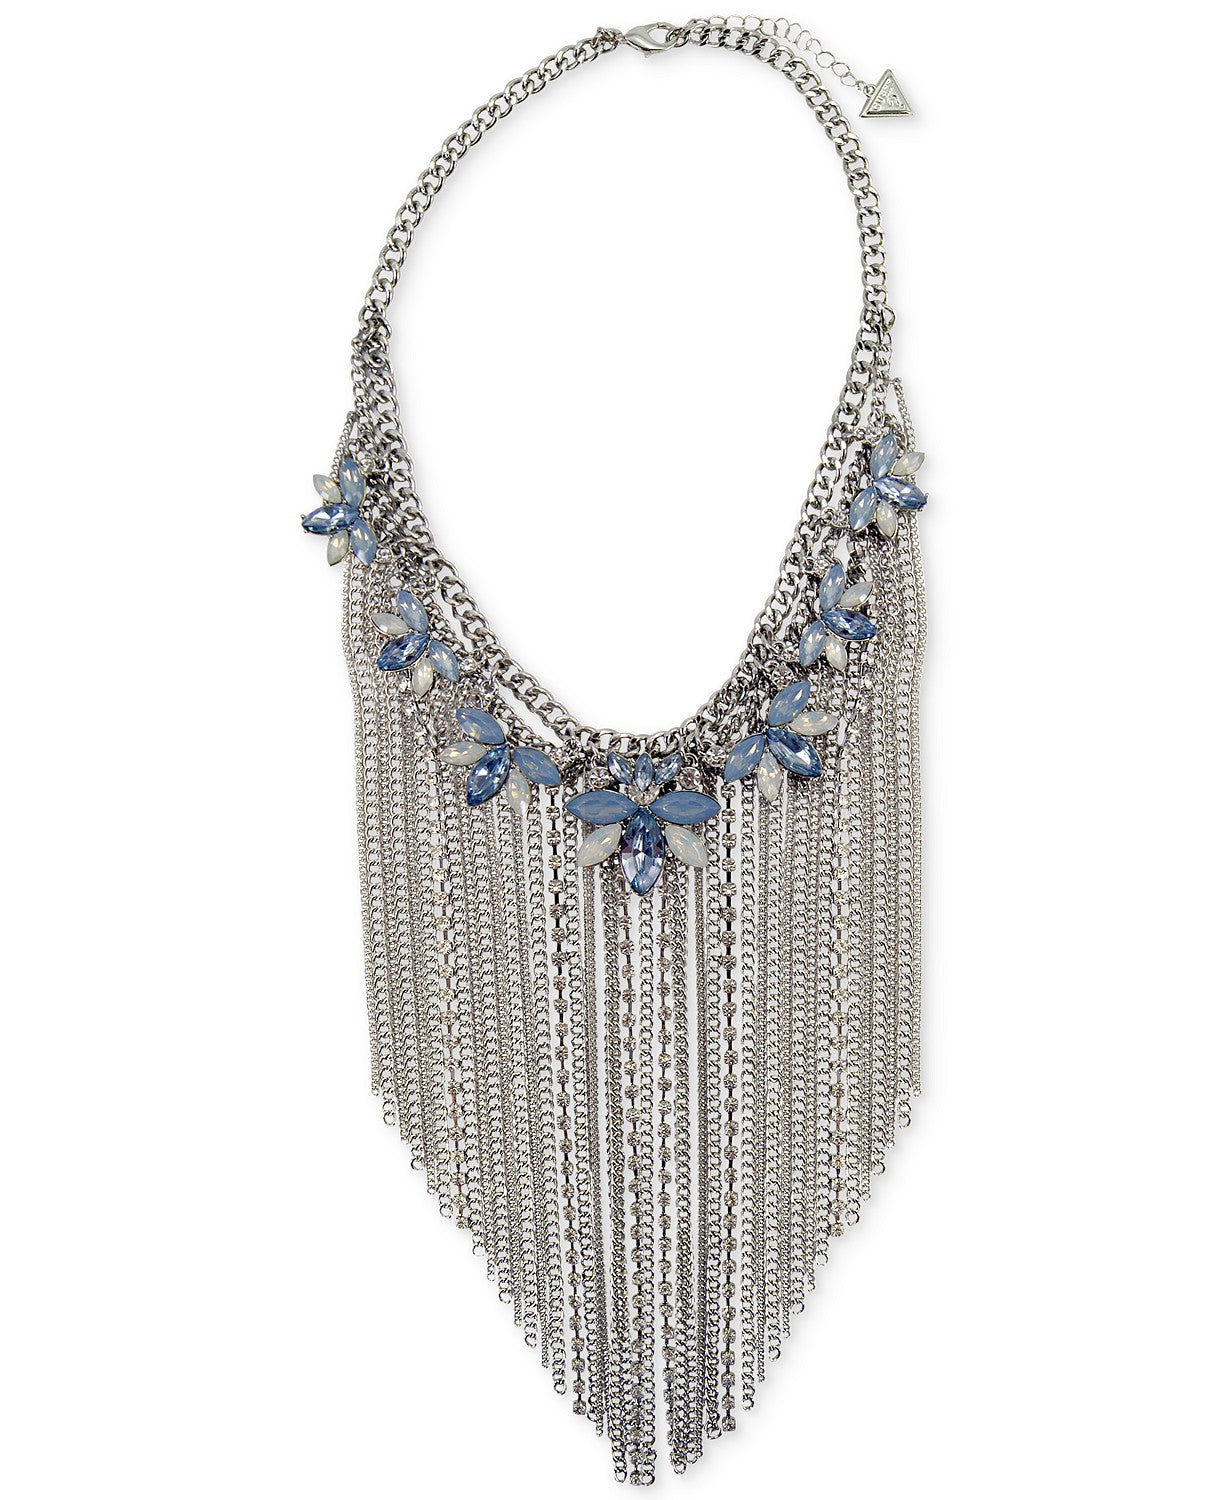 "GUESS Silver-Tone Crystal & Stone Flower with Chain Fringe Statement Necklace, 16"" + 2"" extender"